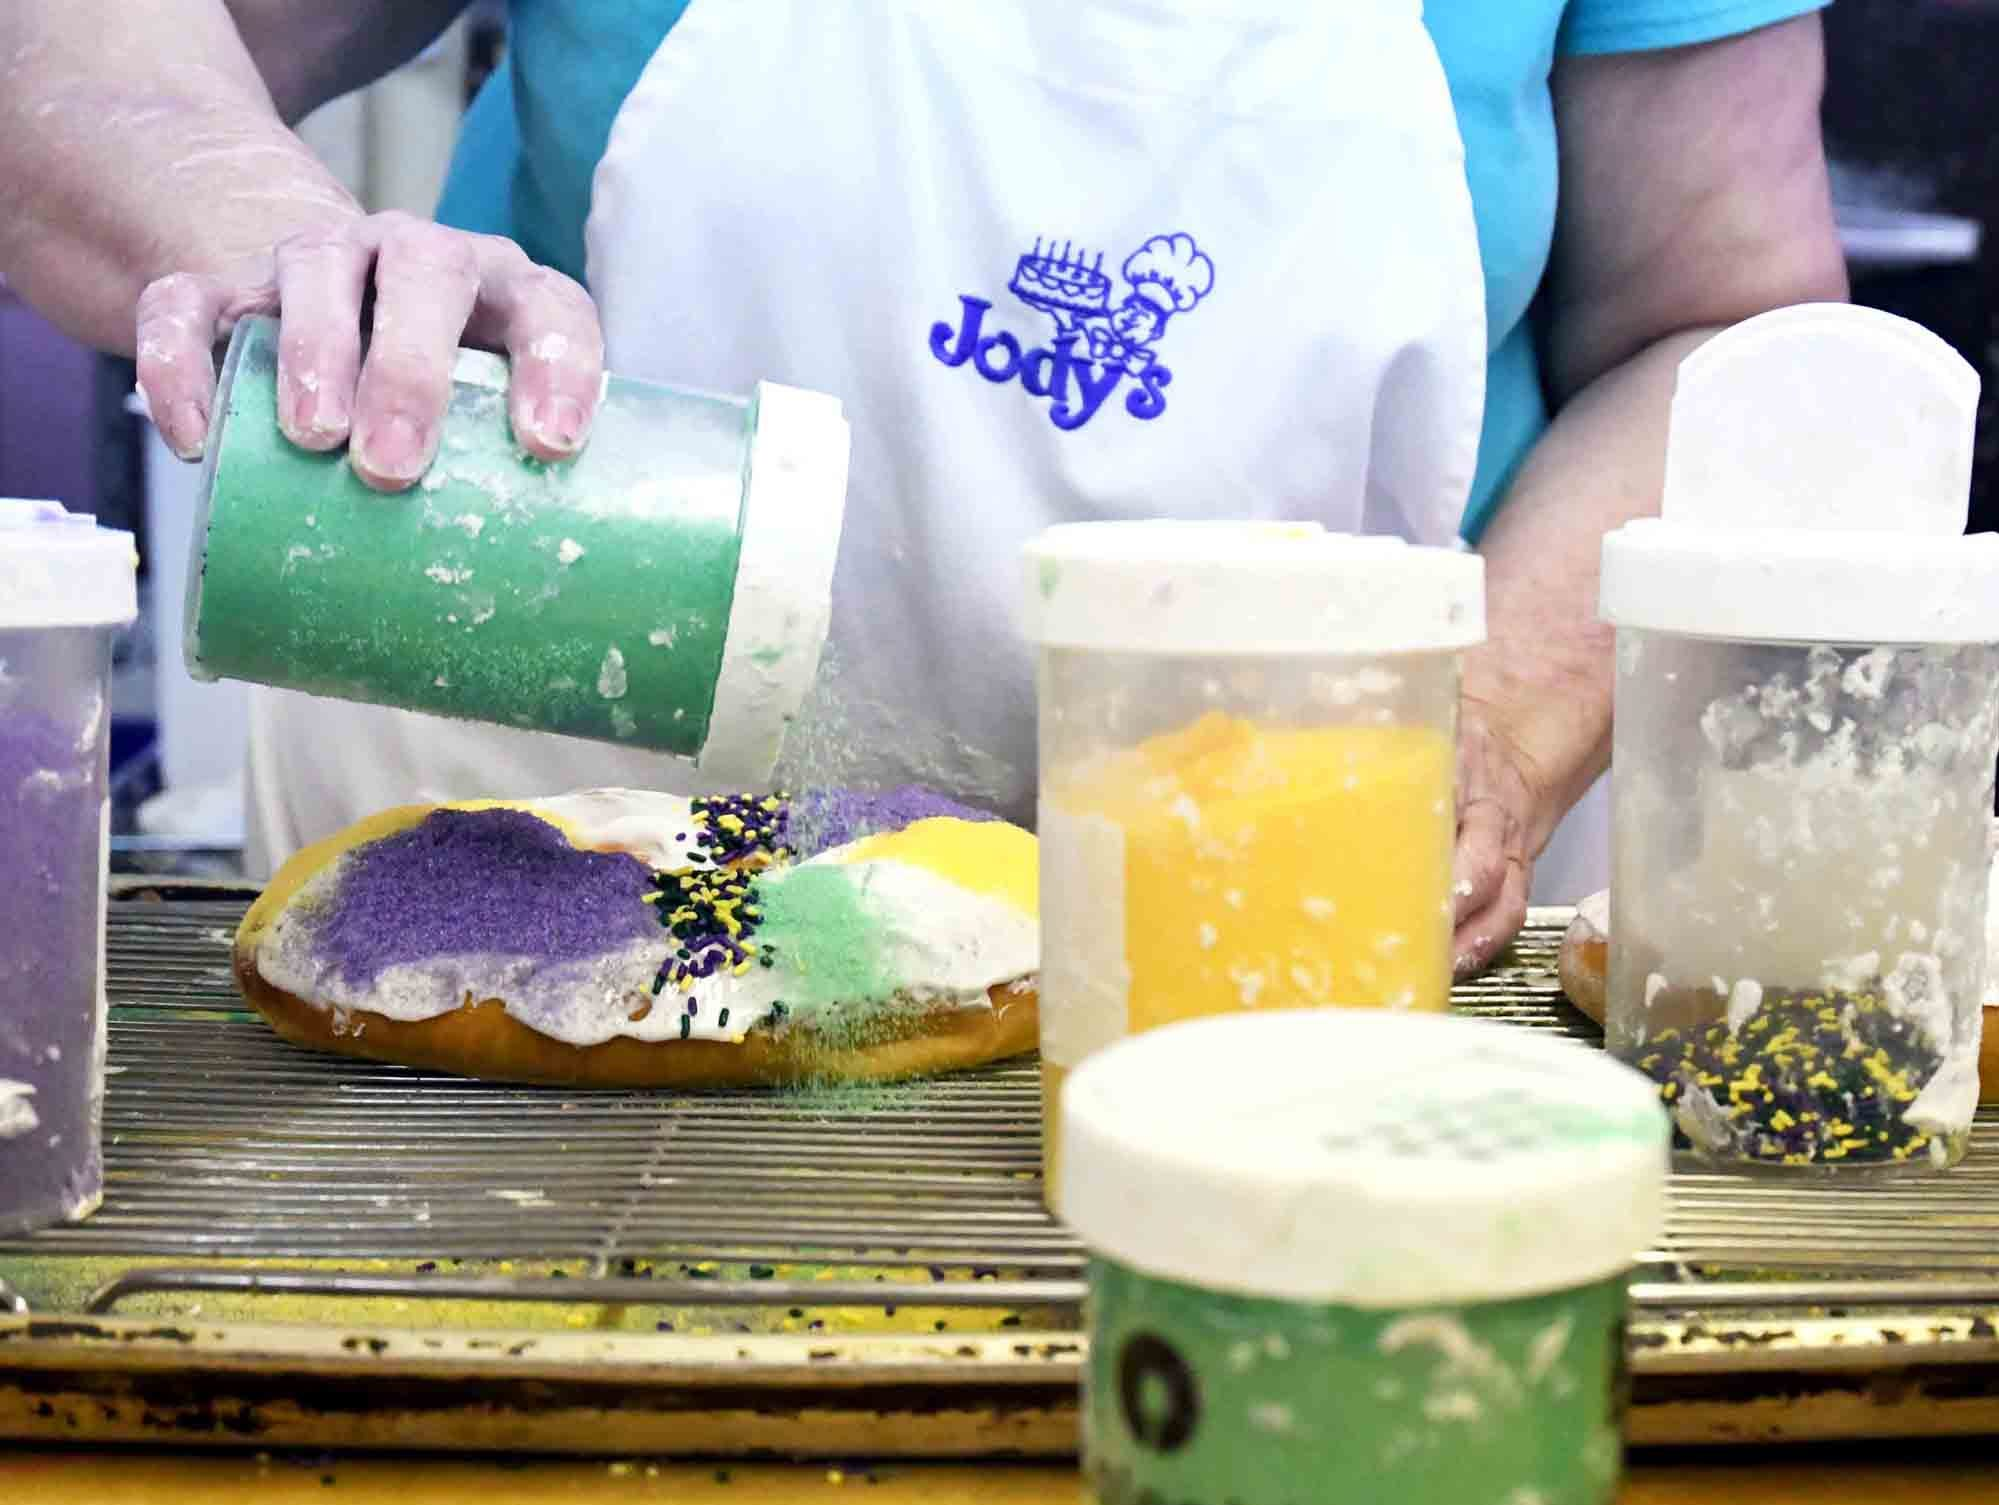 Shirley Nichols adds sugar and sprinkles to the king cakes at Jody's Bakery in Hattiesburg. The bakery provides around 15 different flavors of king cakes. They can be found at Keith's Superstore, Strick's BBQ and Pier 98.